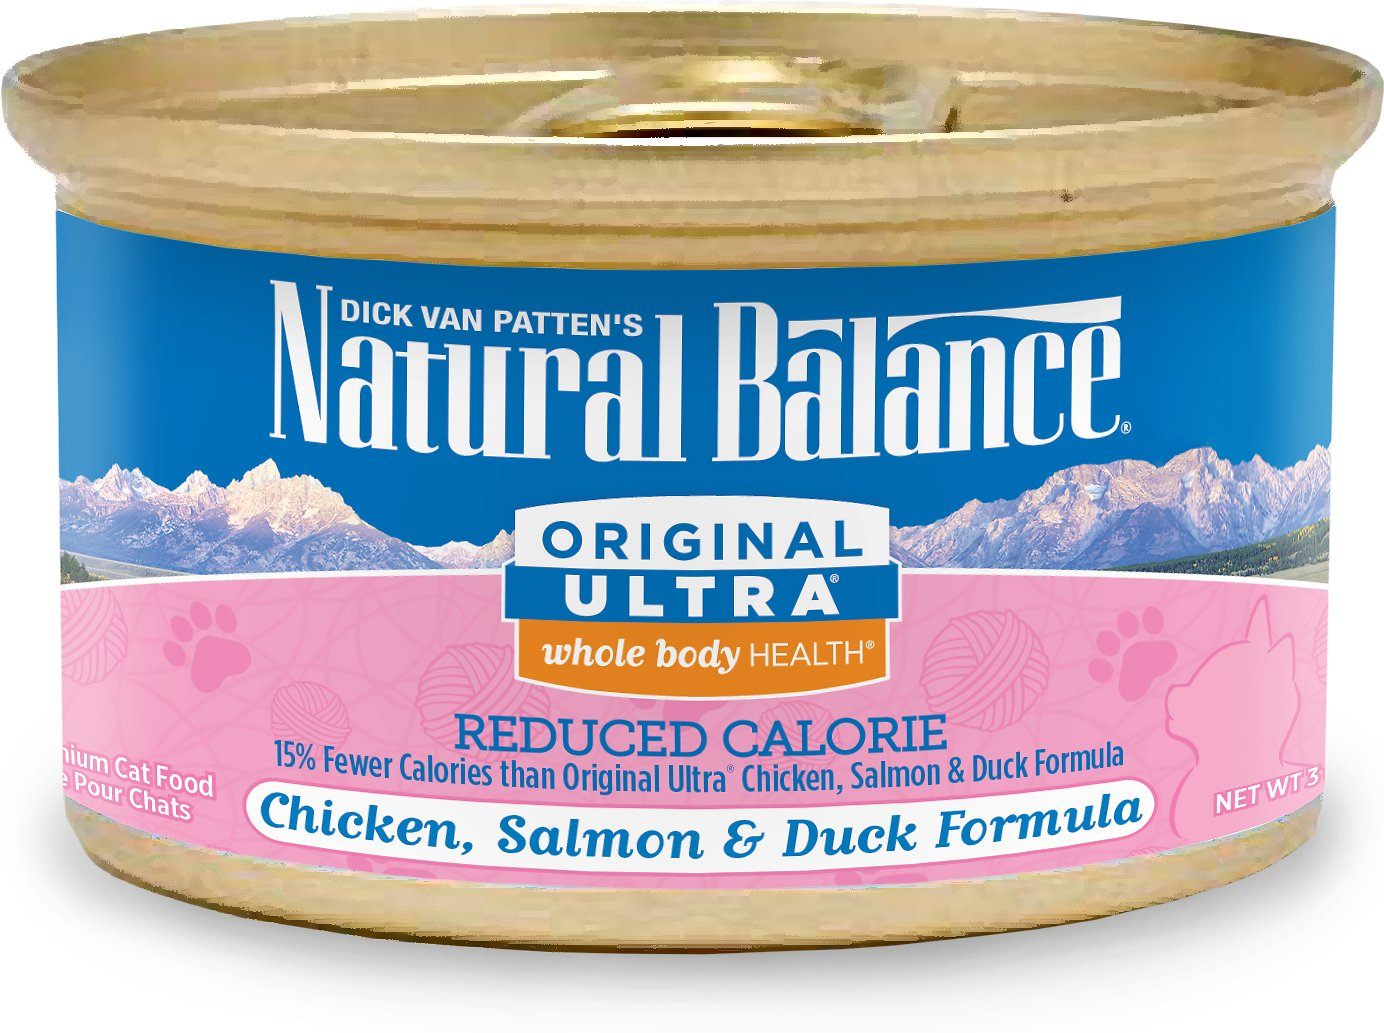 Natural Balance Original Ultra Reduced Calorie Formula Canned Cat Food